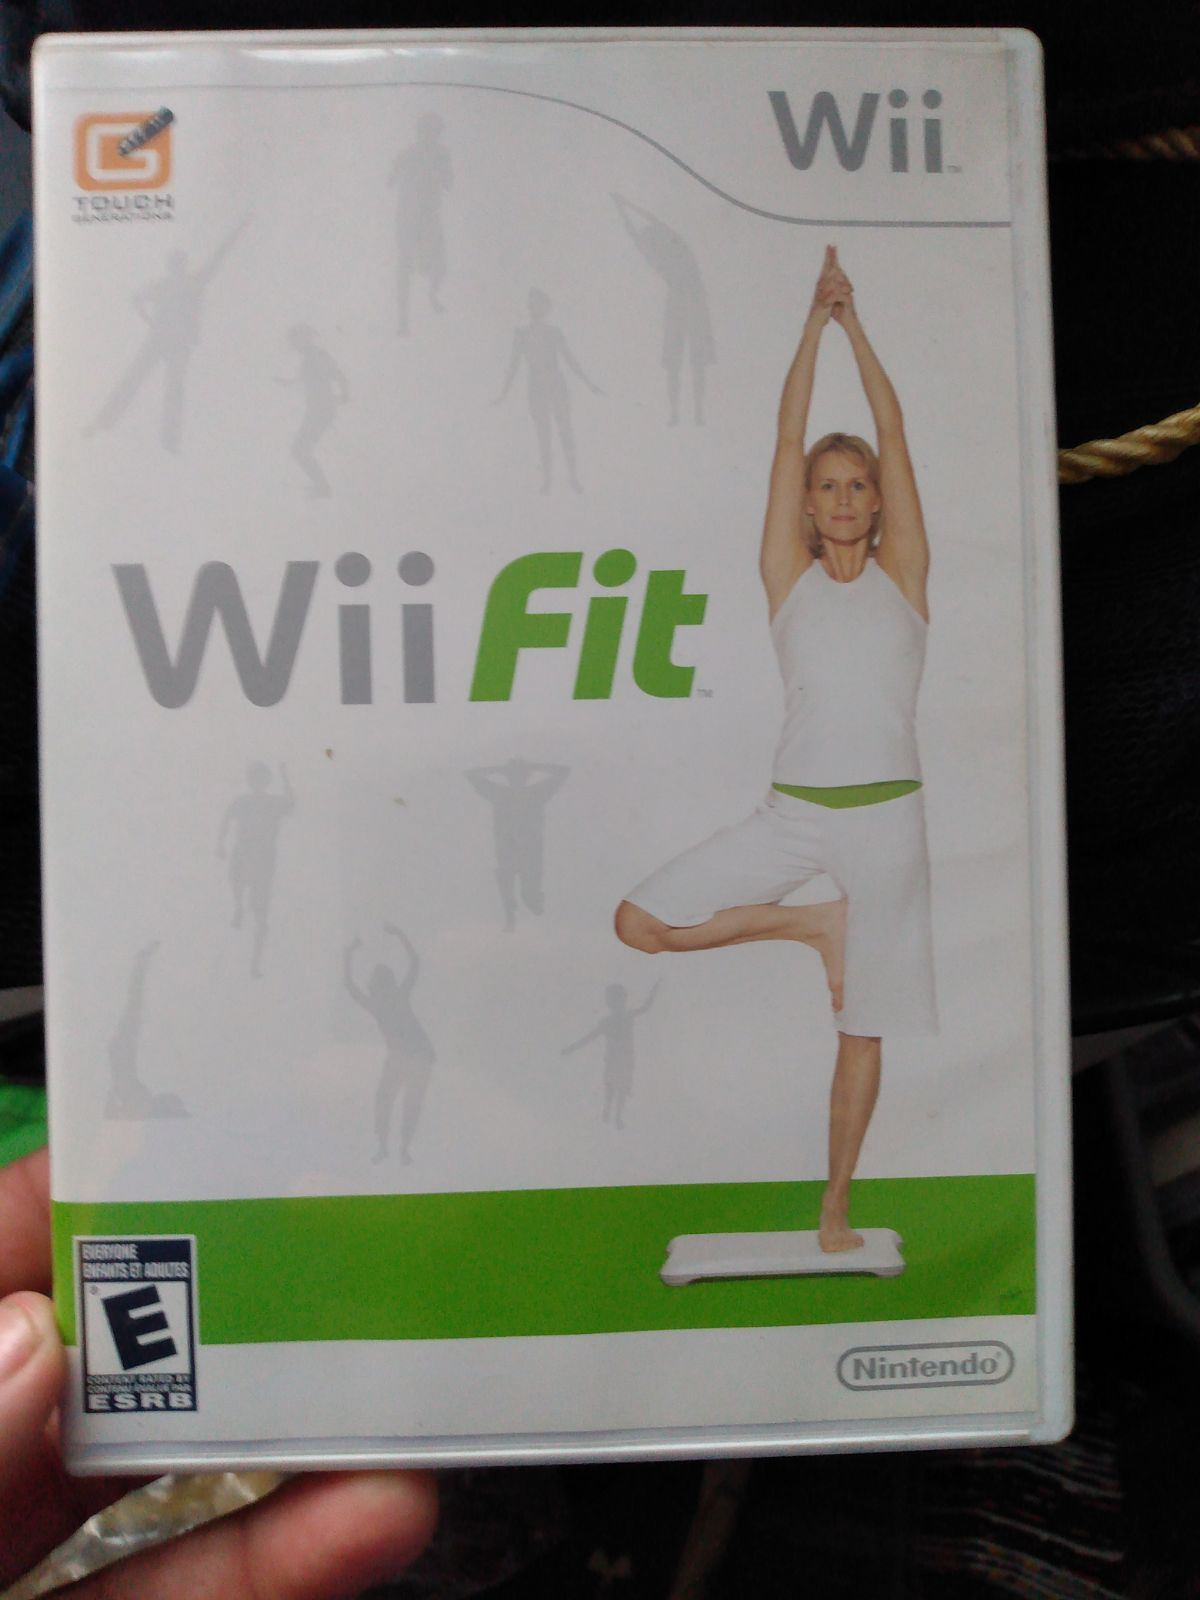 Wii Fit on Nintendo Wii